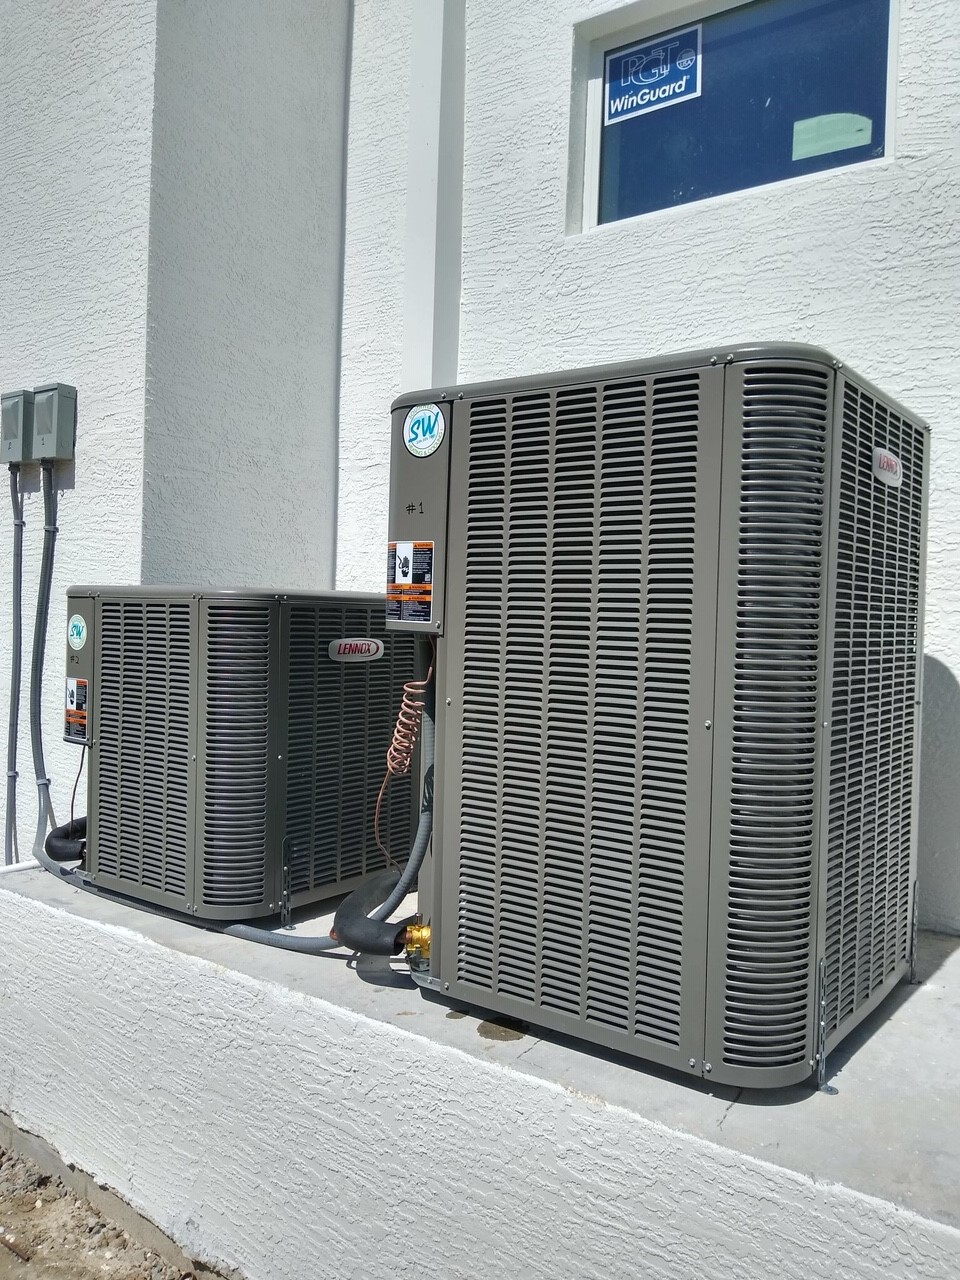 Both condensers leveled and strapped for weather. High quality installation.